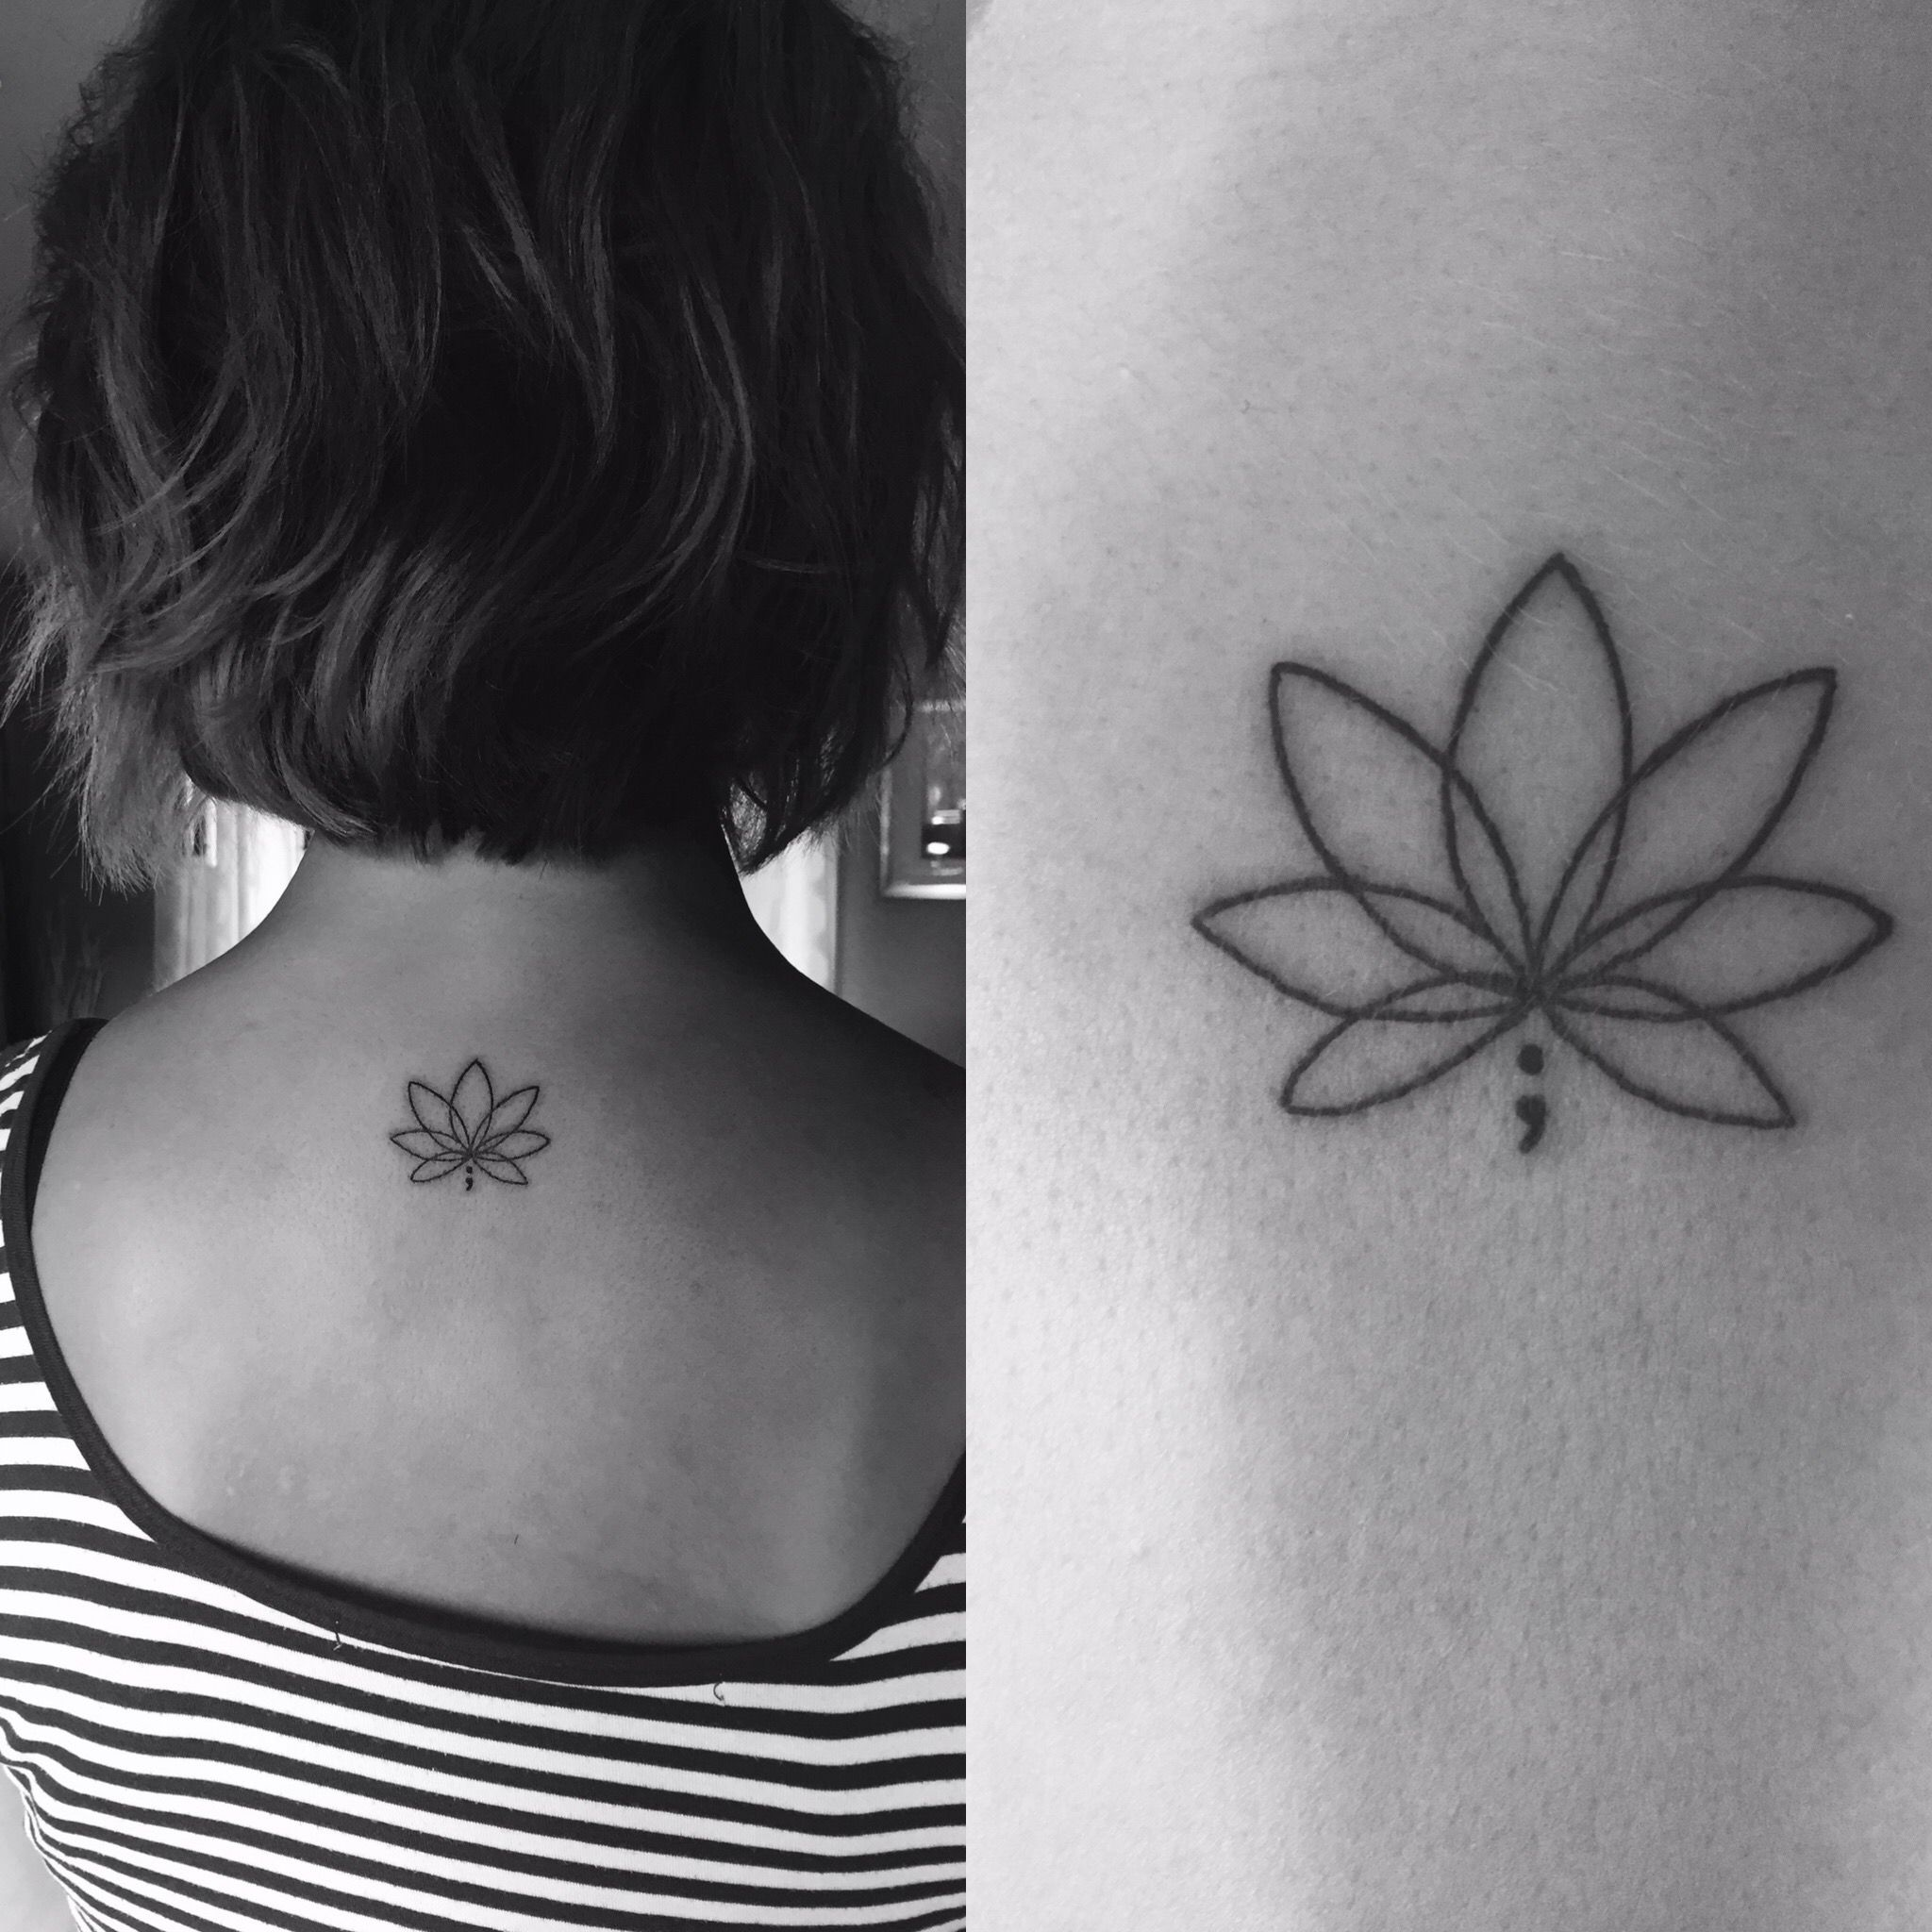 My first (but not last) tattoo. A lotus flower & a